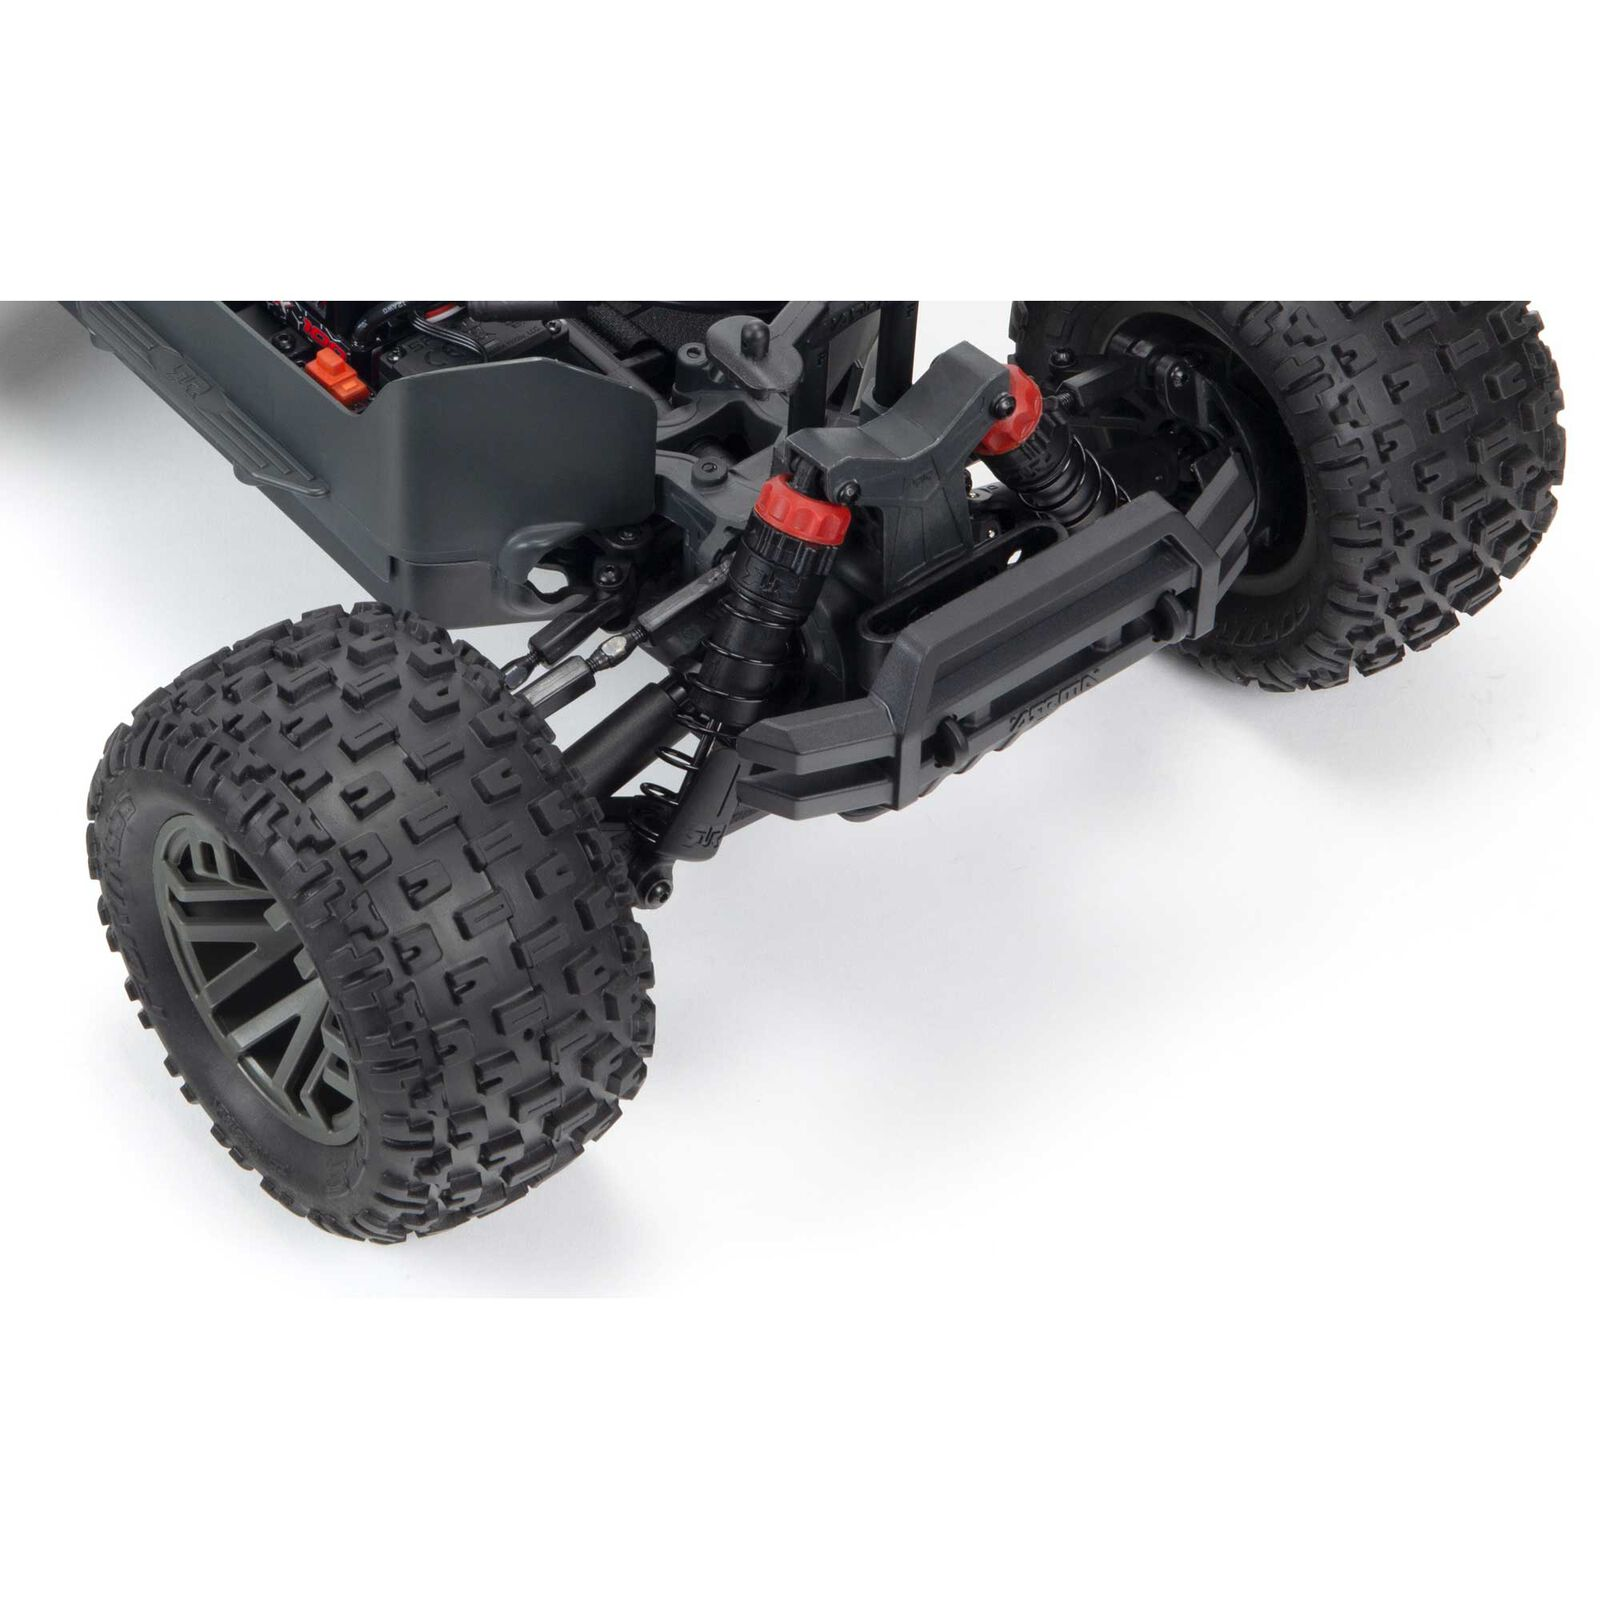 1/10 GRANITE 4X4 V3 3S BLX Brushless Monster Truck RTR, Green